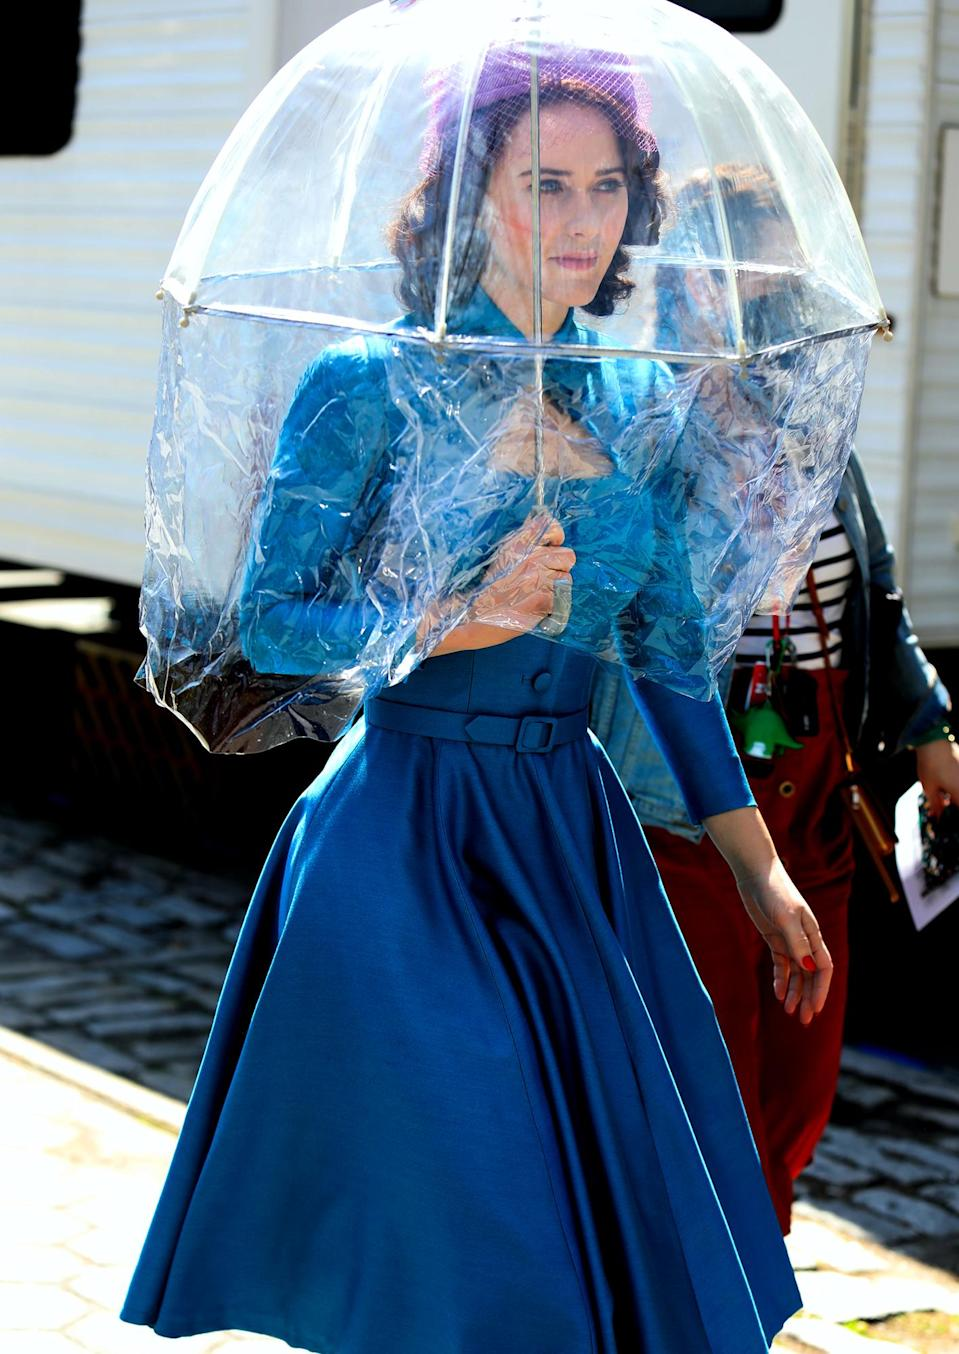 <p>Rachel Brosnahan heads to<em> The Marvelous Mrs. Maisel</em> set underneath an umbrella on Thursday in N.Y.C.</p>